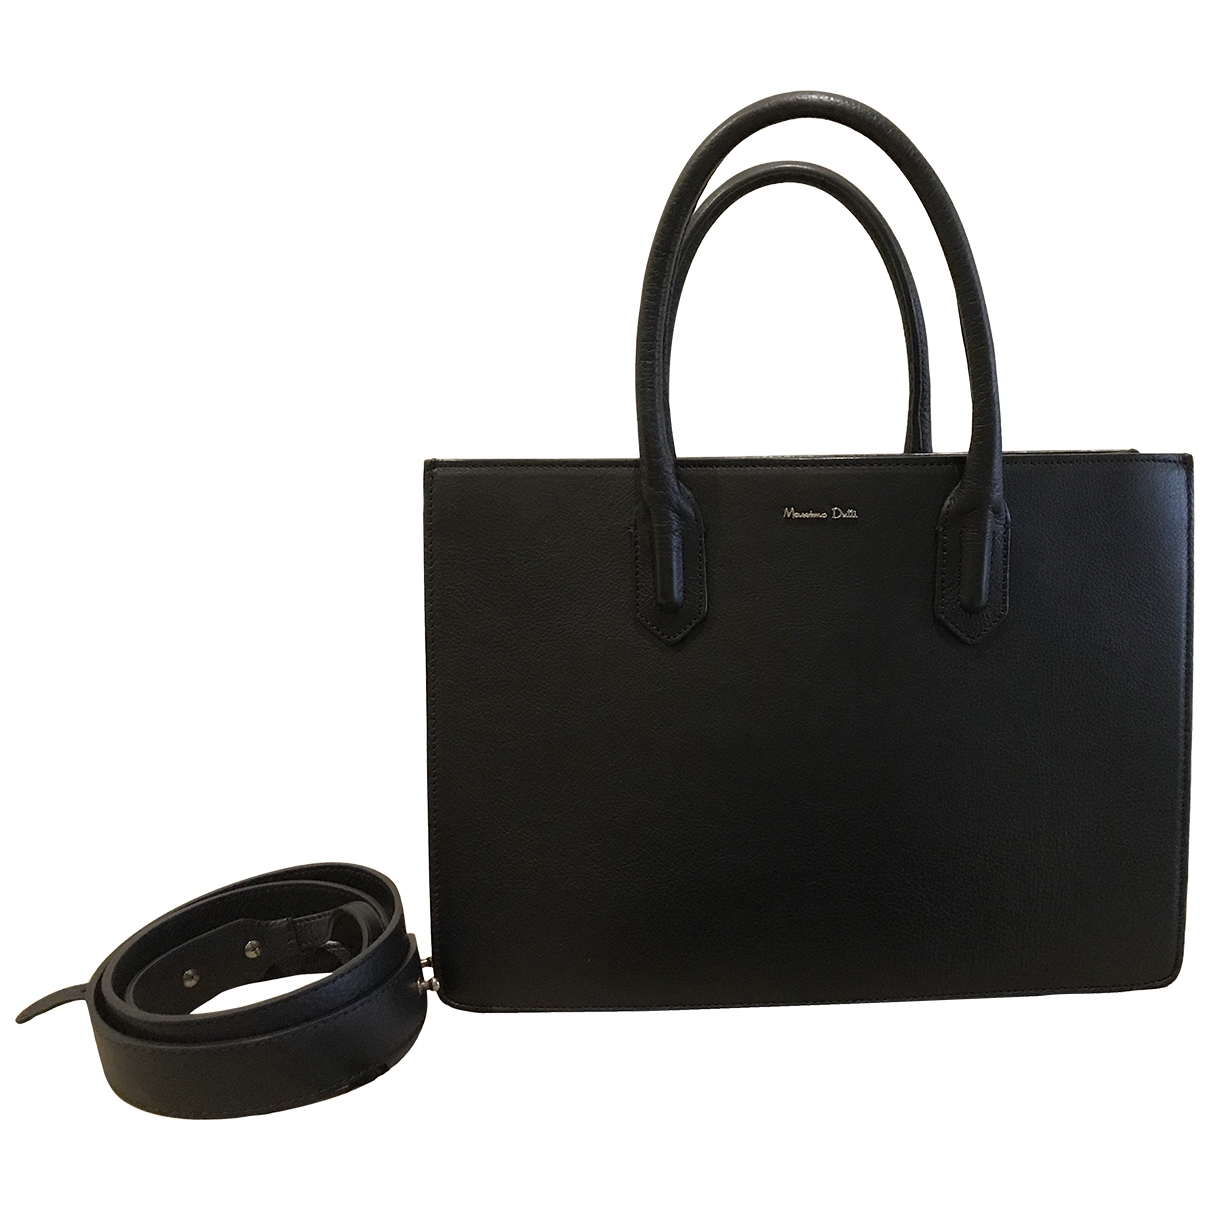 Massimo Dutti \N Black Leather handbag for Women \N